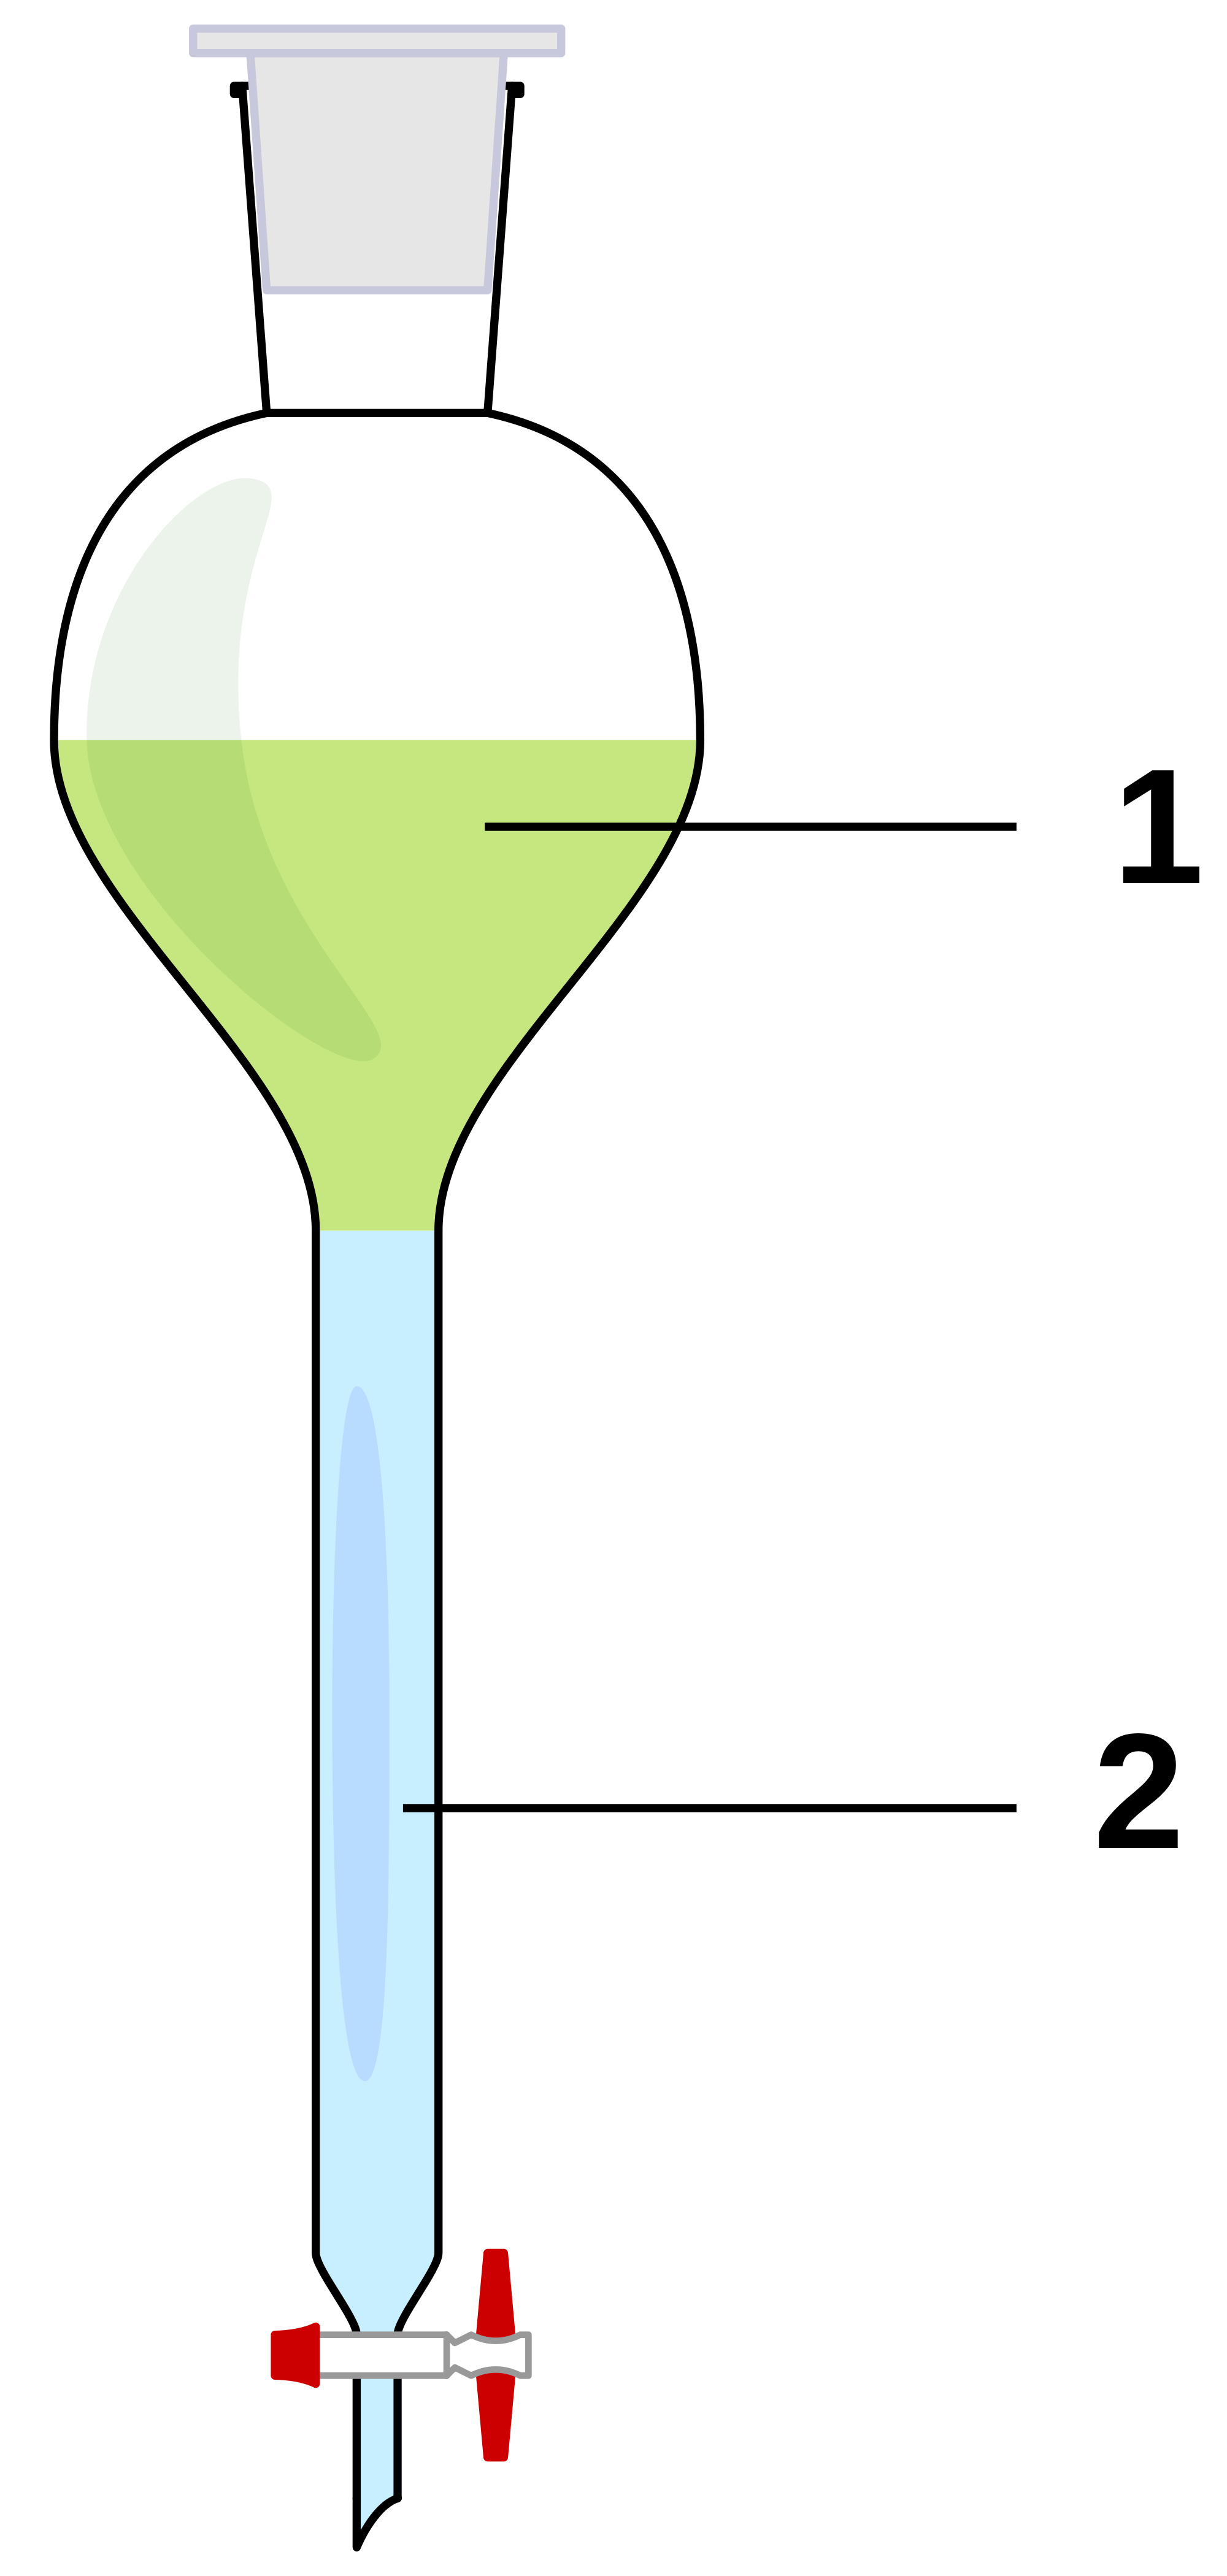 File:Separatory funnel.